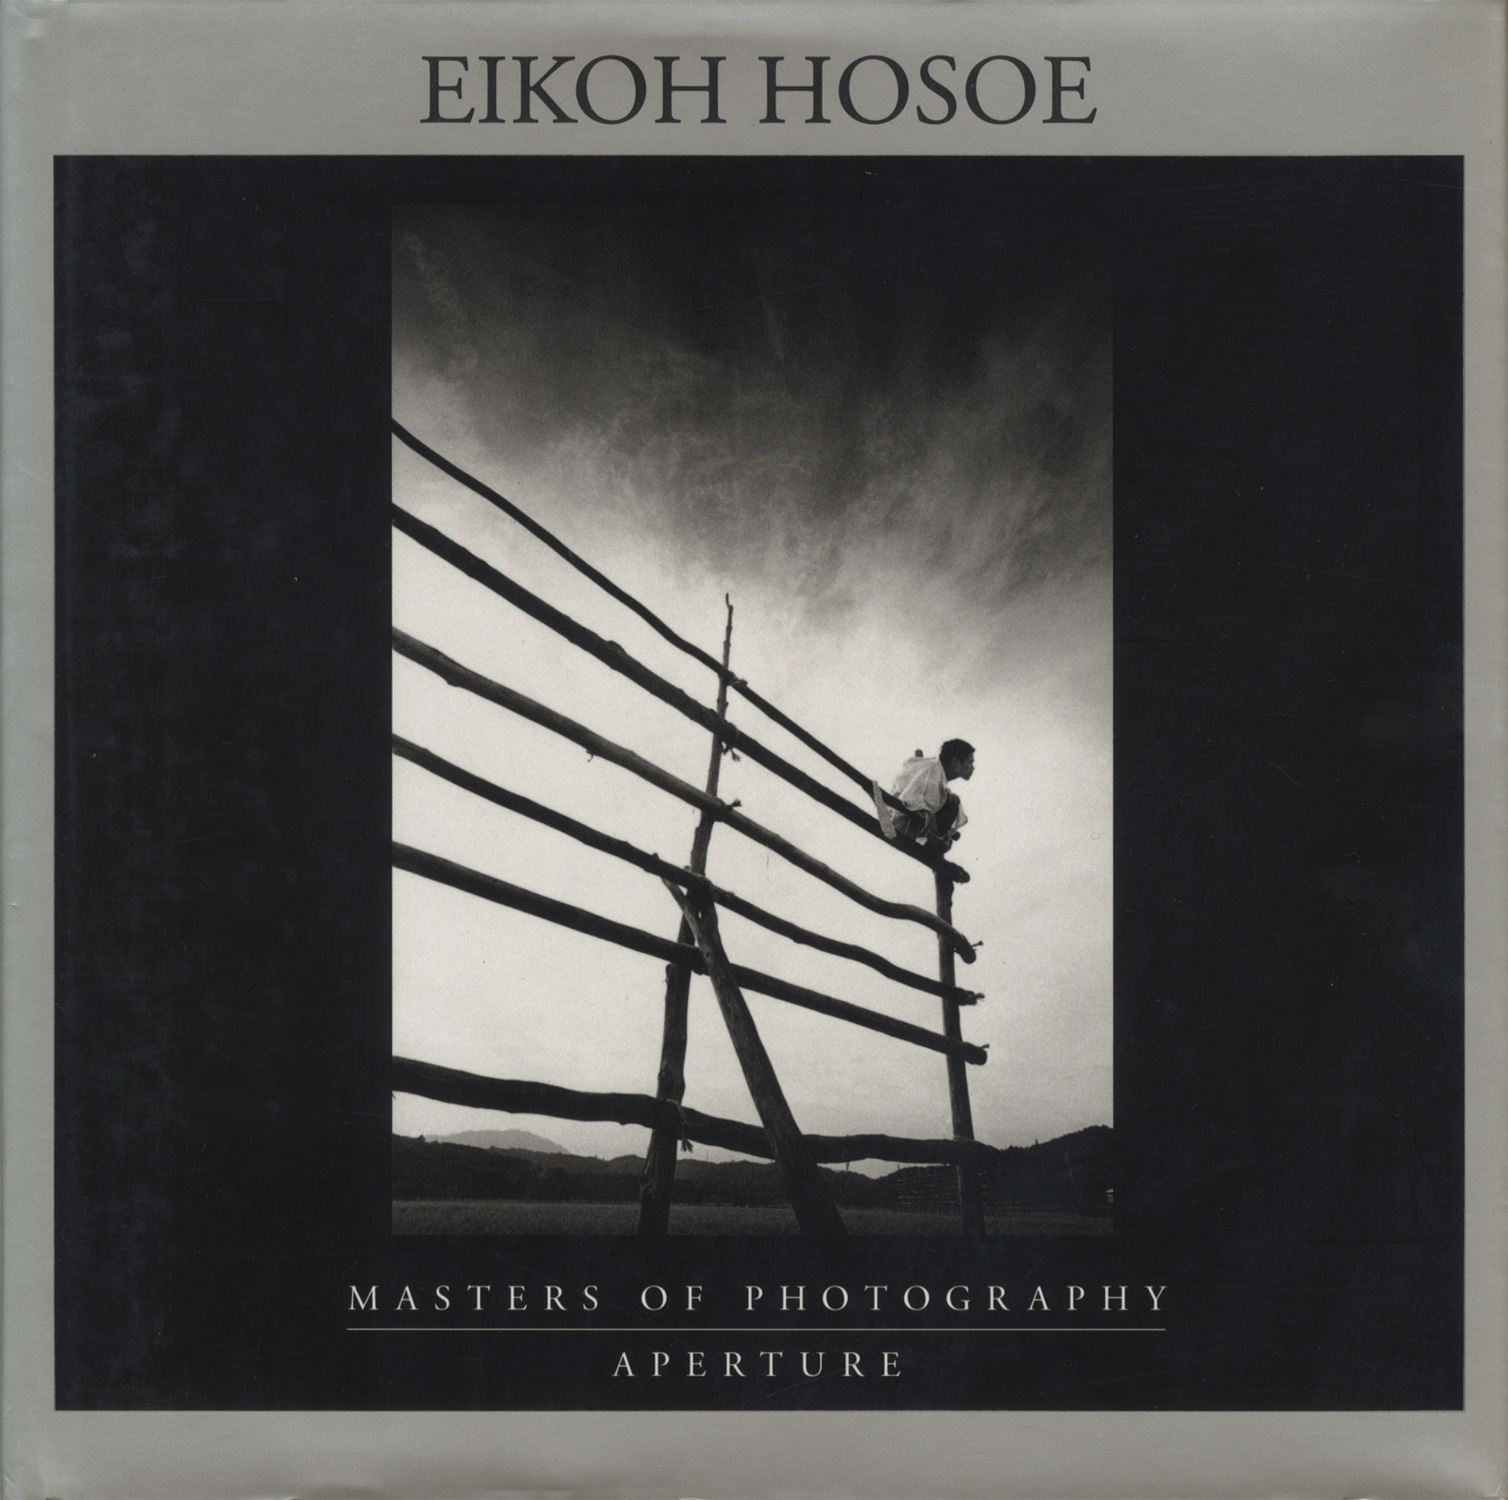 Eikoh Hosoe With an Essy by Mark Holborn[image1]